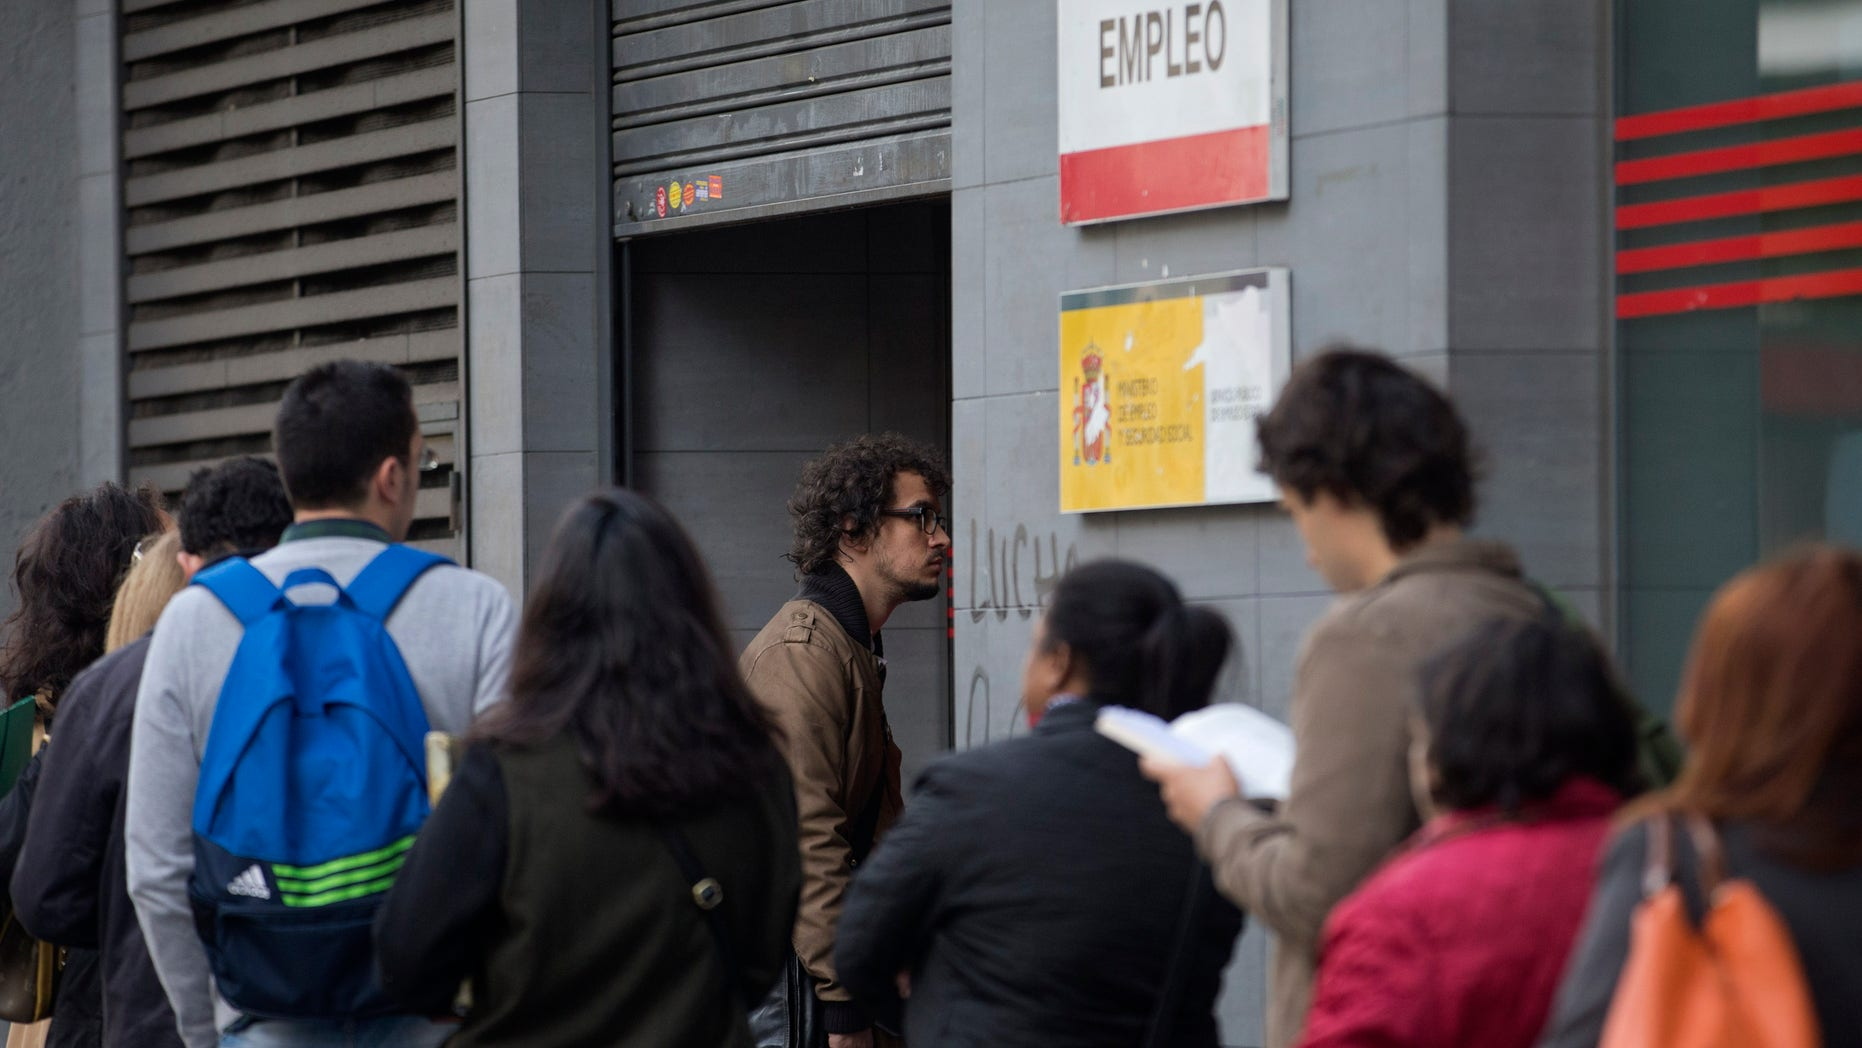 People queue to enter a government unemployment office in Madrid, Spain, Tuesday Oct. 5, 2013. The number of people registered as unemployed in Spain rose by a little over 87,000 in October as many jobs created in the summer tourist season come to an end. The increase comes amid some hopeful signs over Spain's economy with a two-year recession coming to an end in the third quarter, albeit with modest quarterly growth of 0.1 percent. (AP Photo/Paul White)